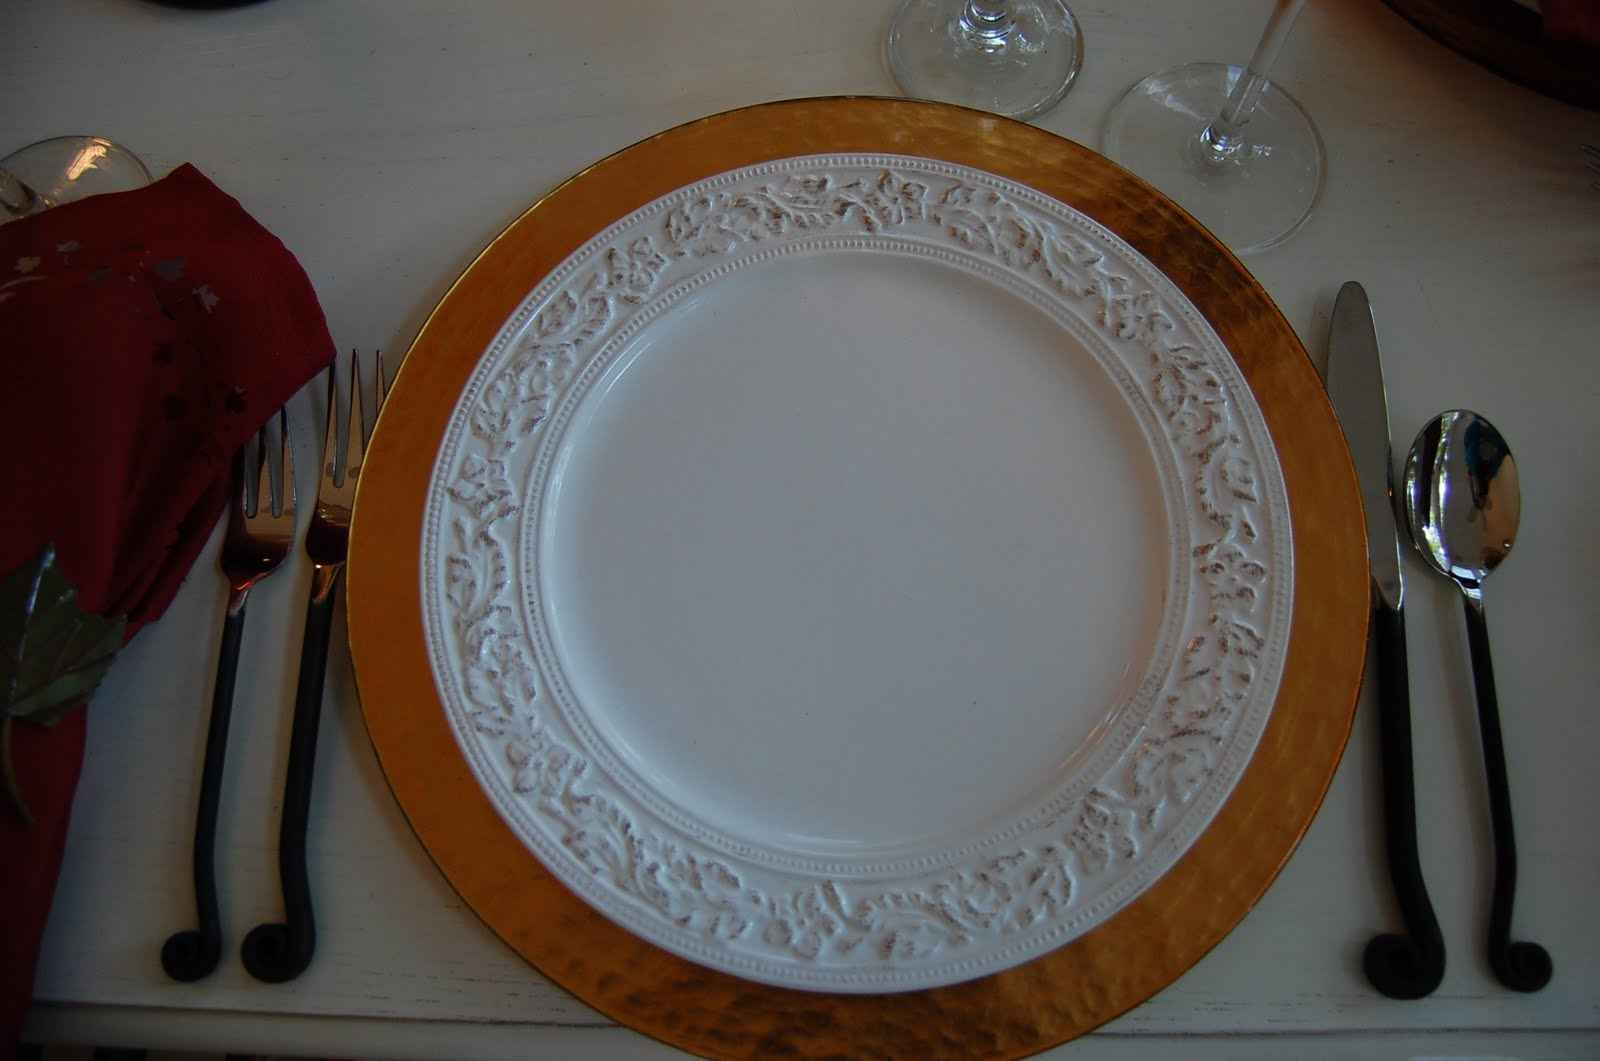 cupboard country dinner pfaltzgraff plate round